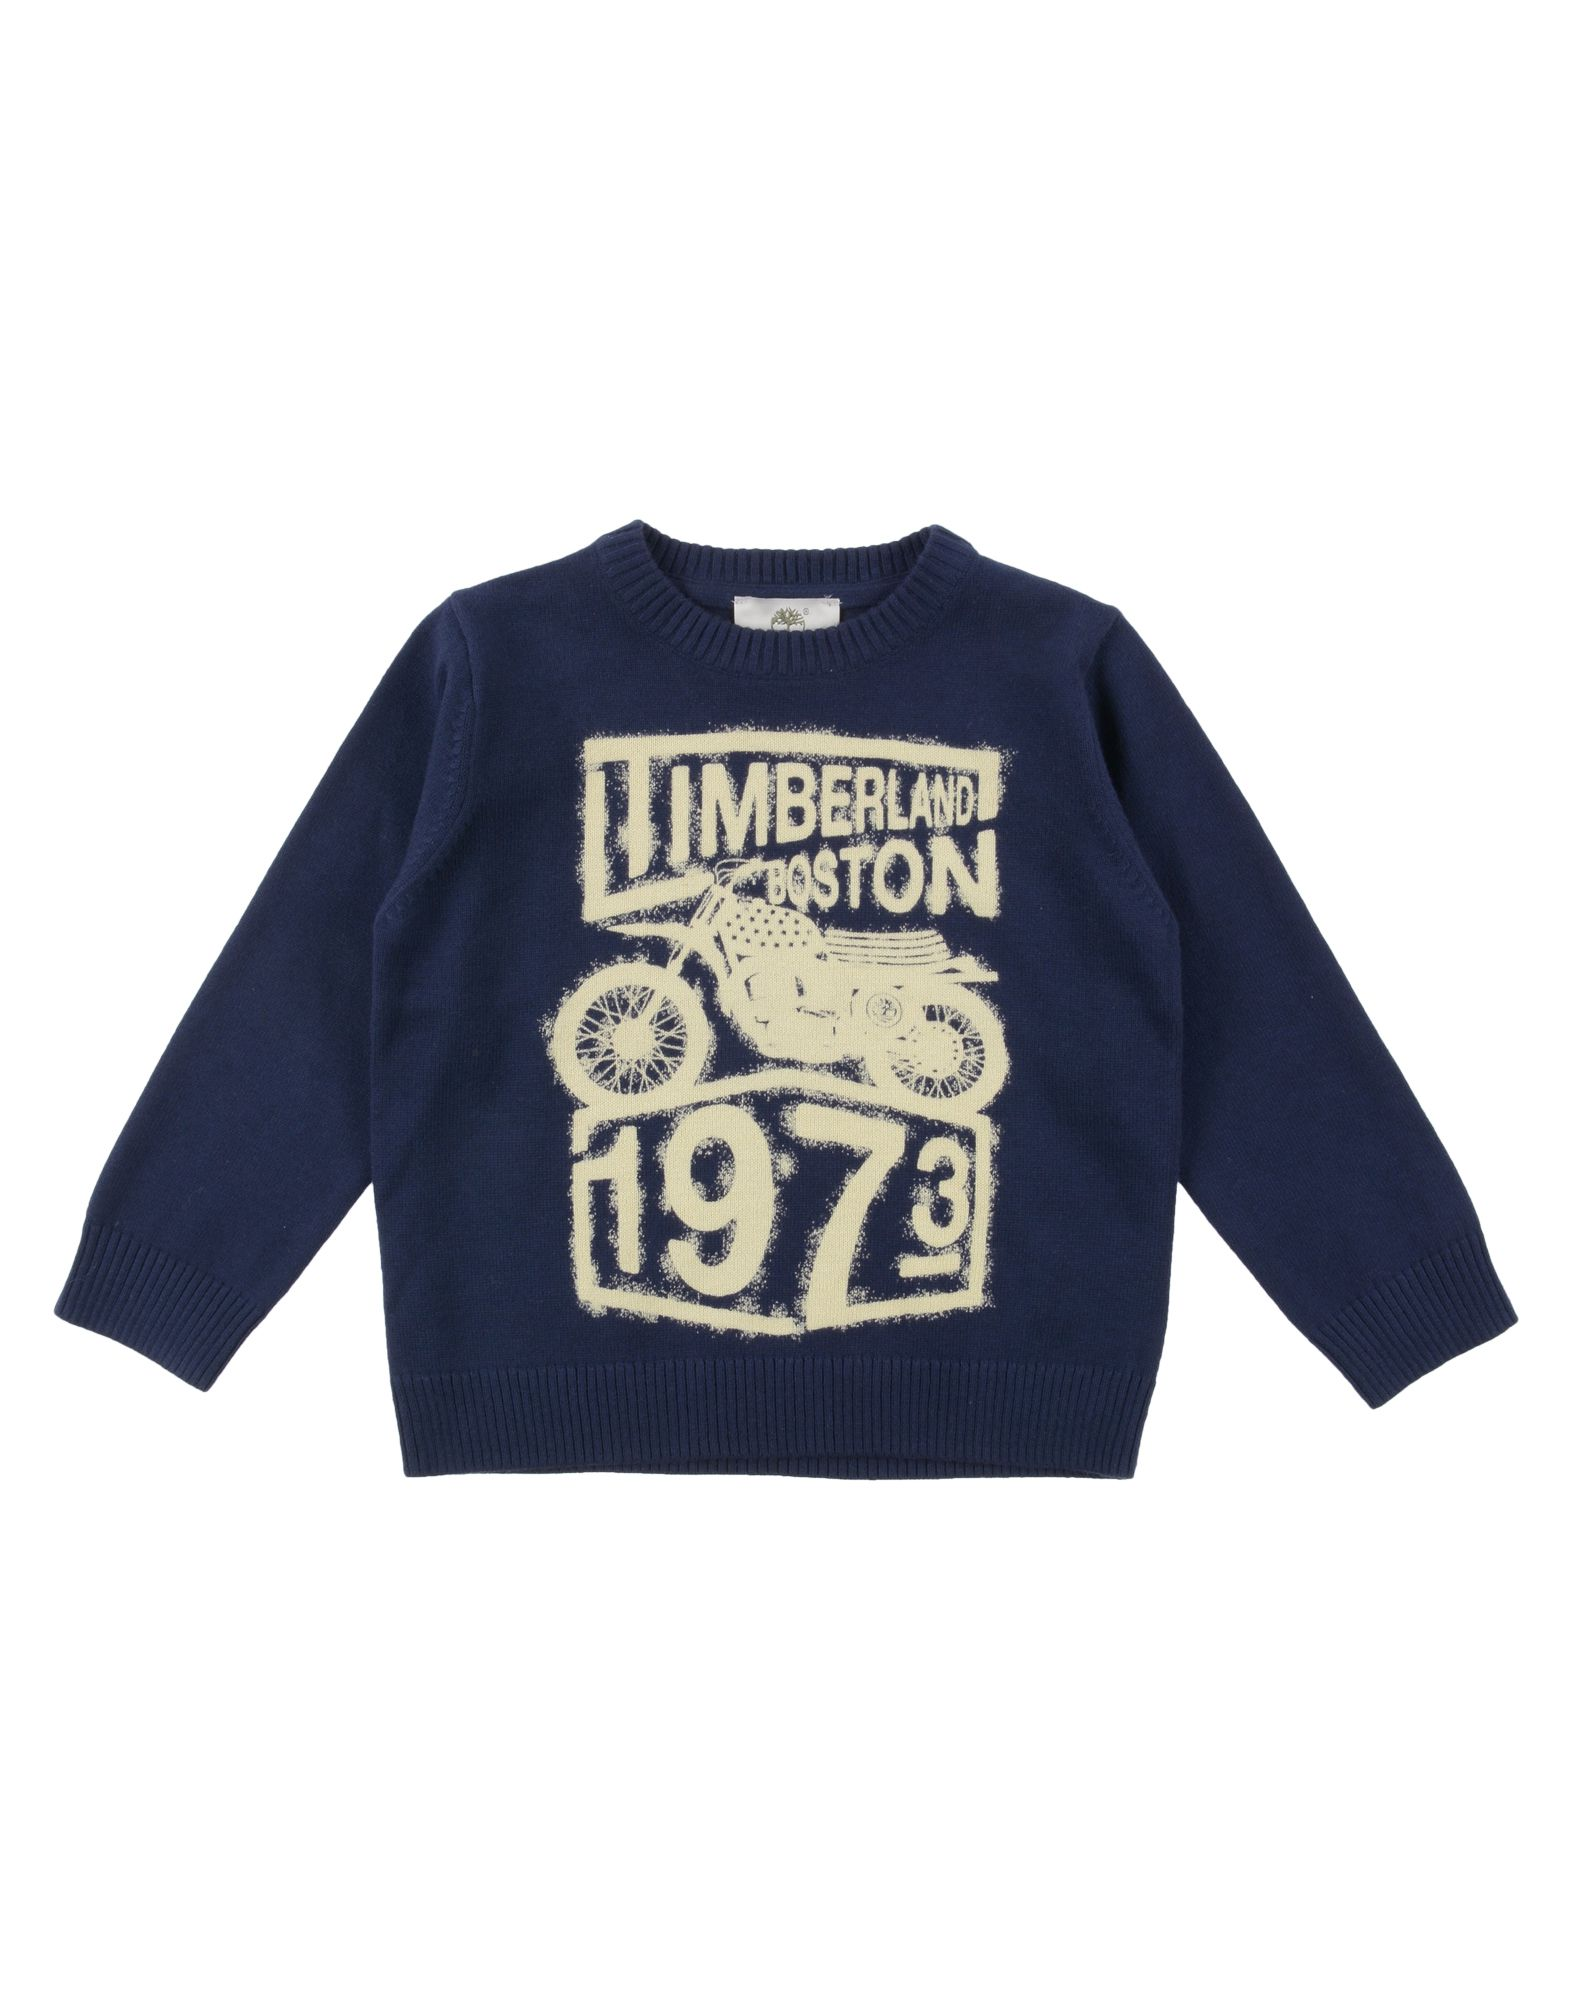 Timberland - Knitwear - Jumpers - On Yoox.com